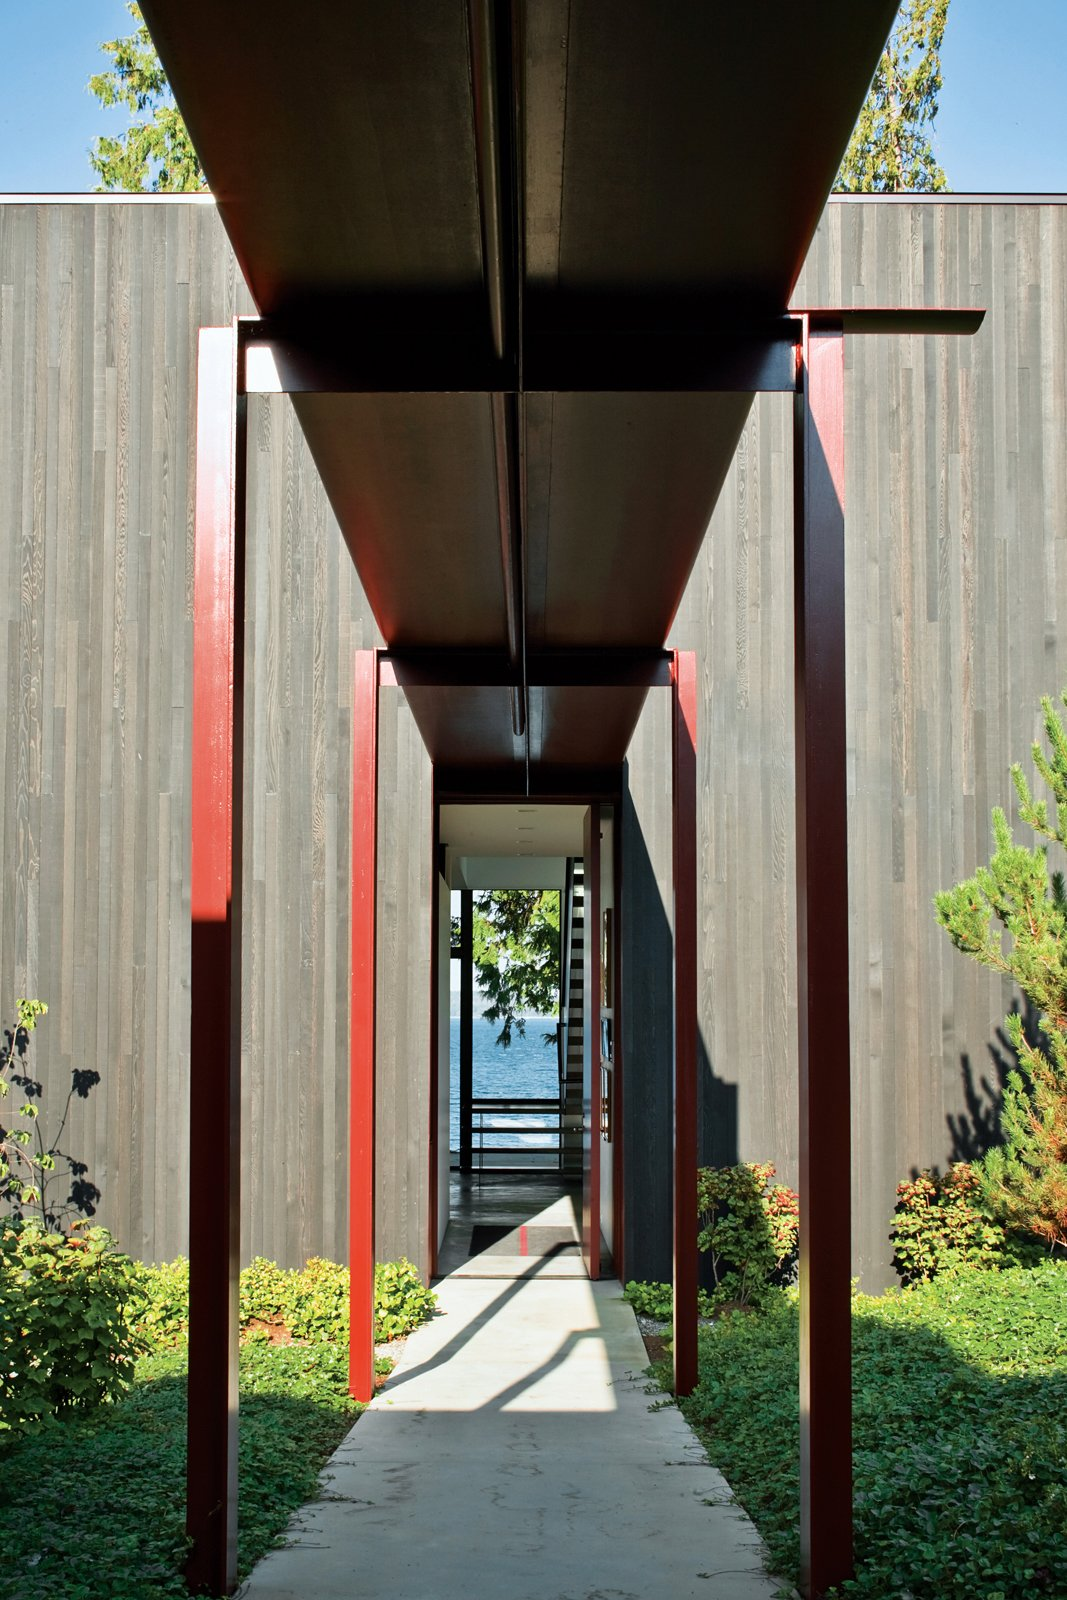 The steel canopy protects the residents from Seattle's notoriously rainy weather as they walk from the entry gate to the front door.  House of Steel  by Diana Budds from Olson Kundig Houses